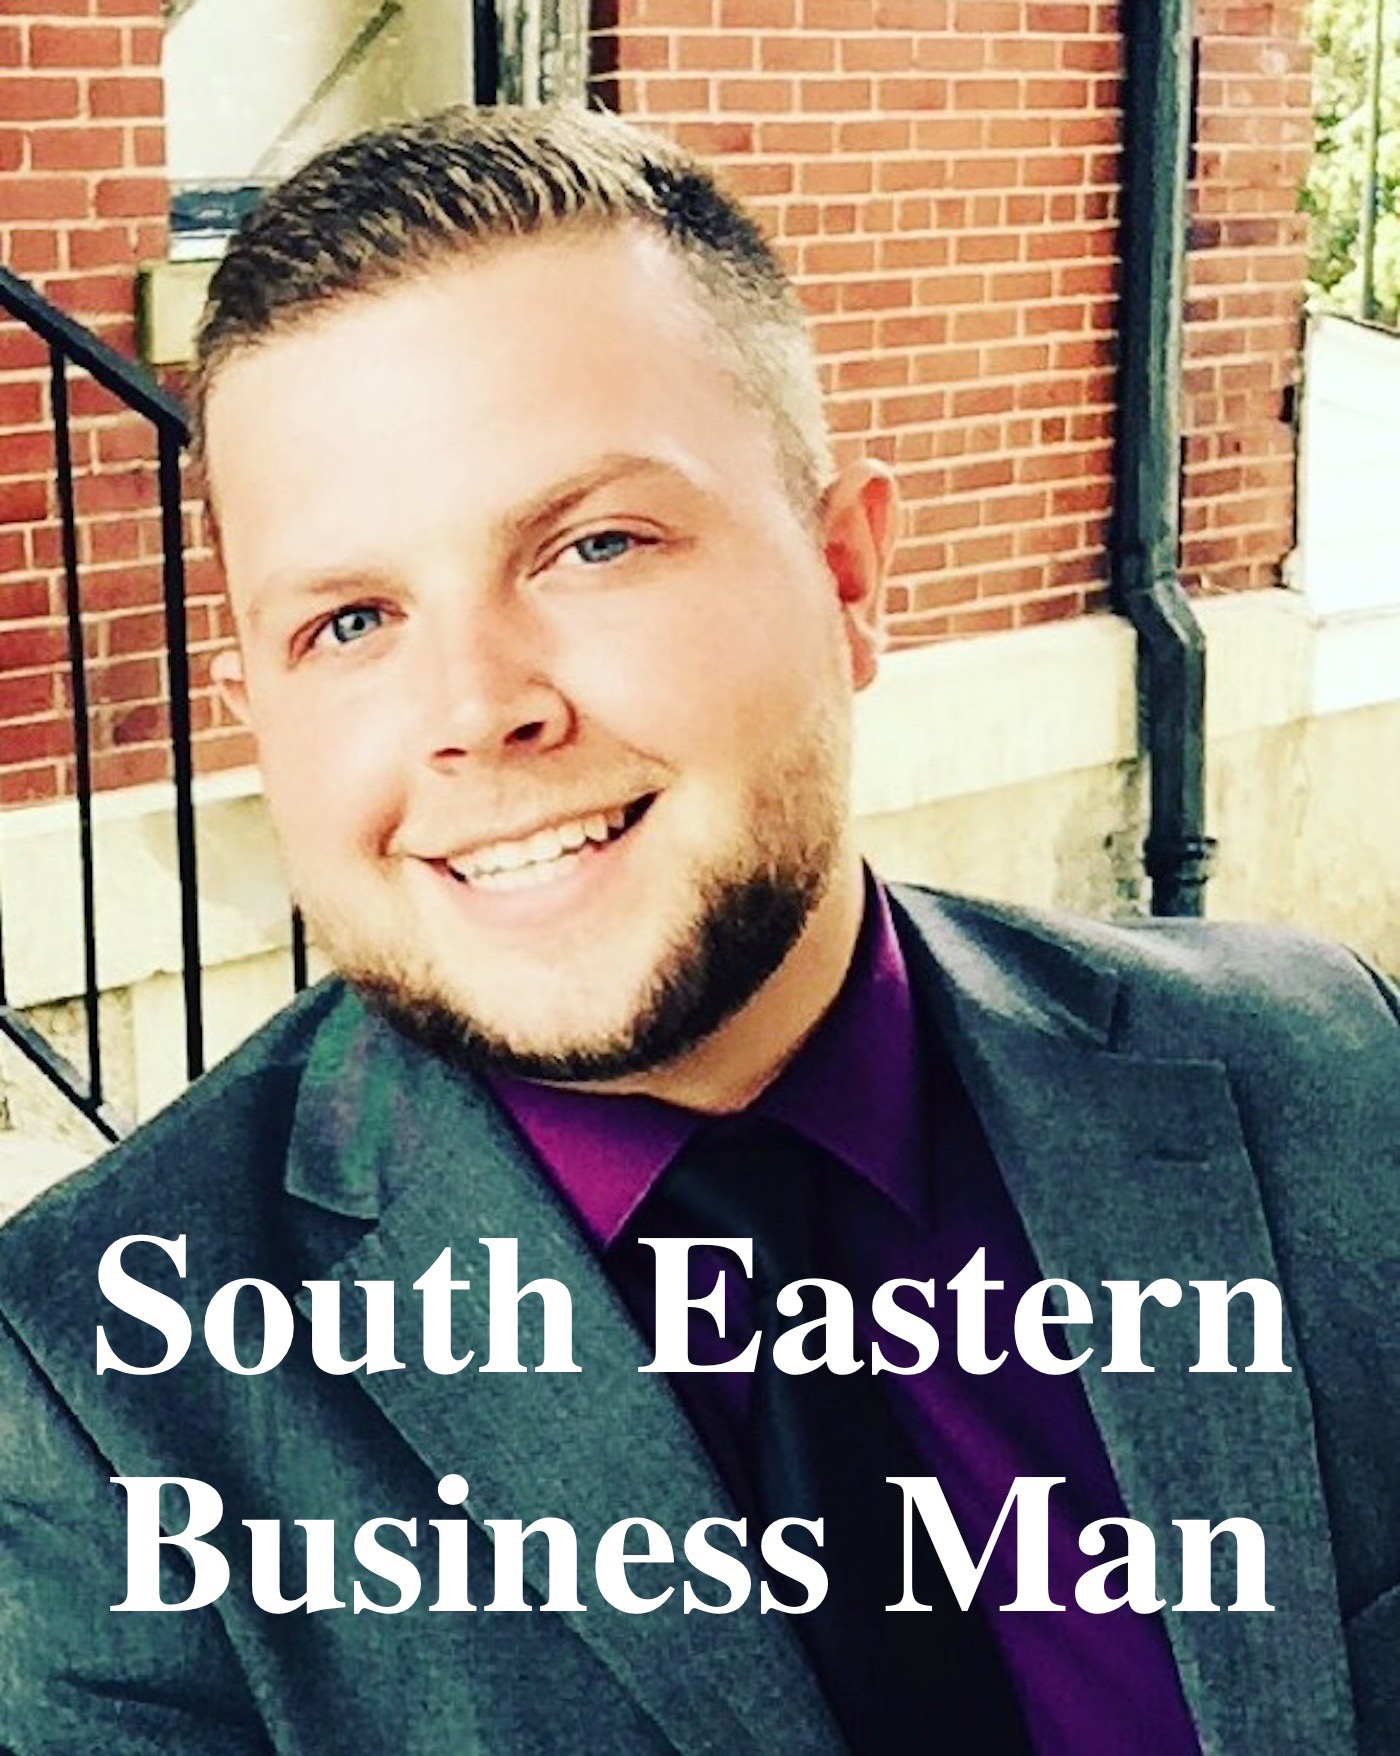 South Eastern Business Man